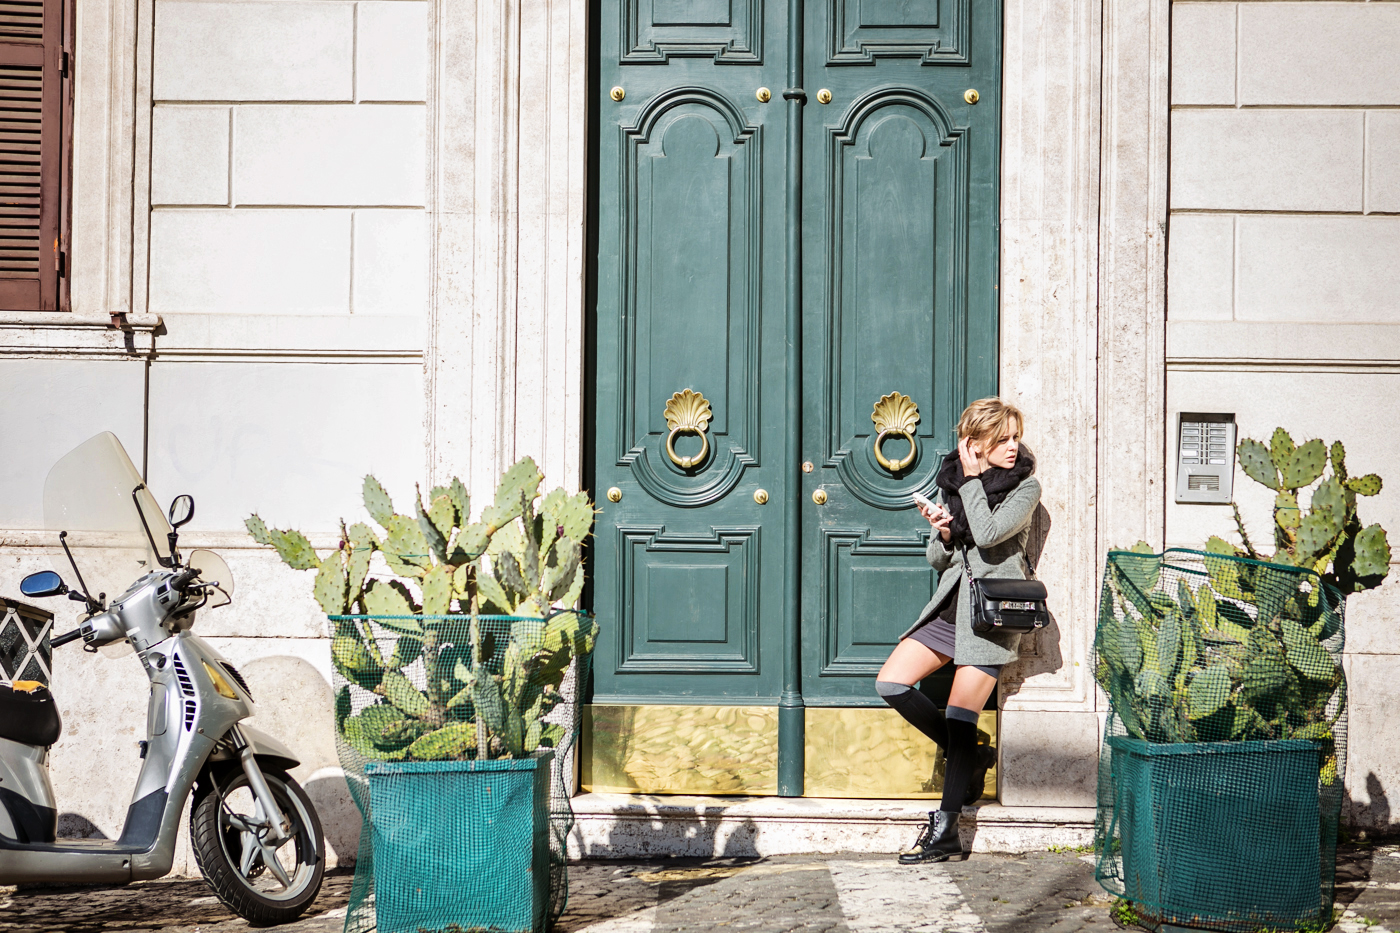 darya kamalova from thecablook com during the trip to Rome walking in the center of the city and wearing chicwish grey coat and laced up booties with proenza schouler ps11 black leather bag-14